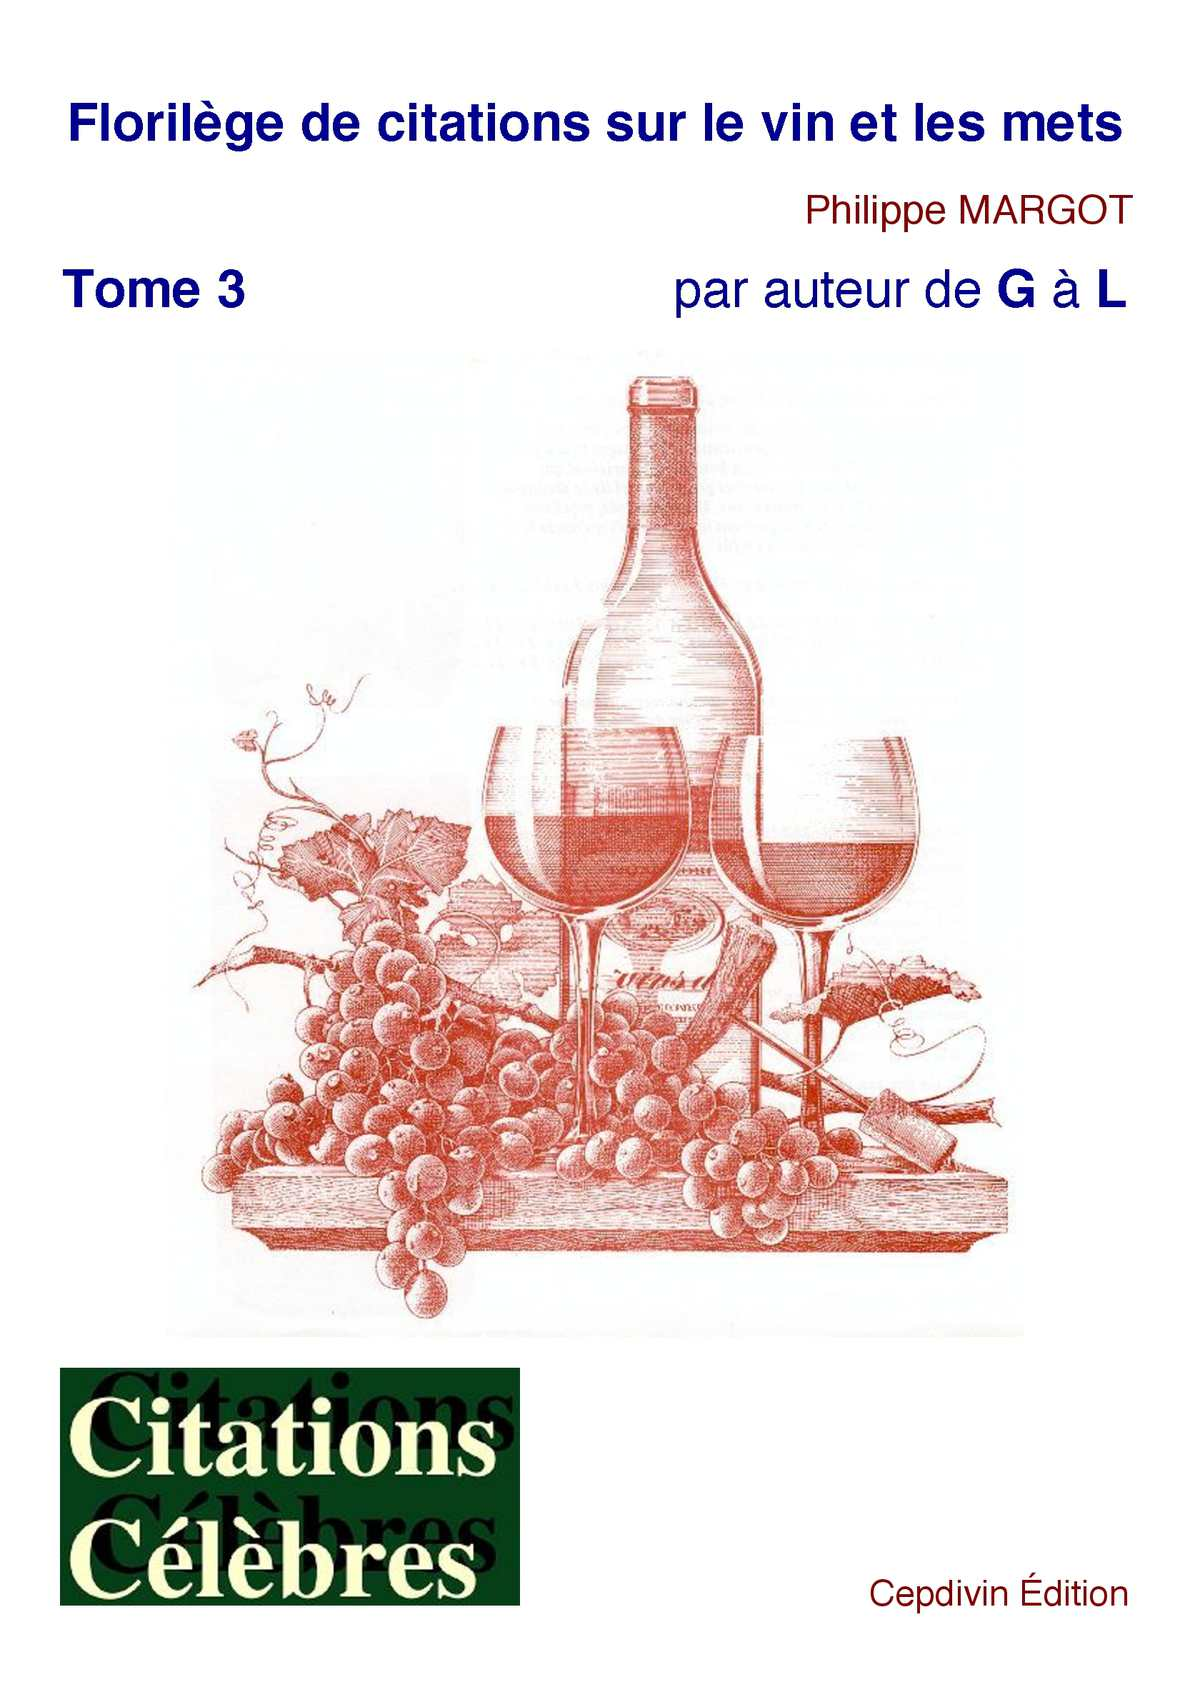 Citation Mariage Torah Citation Clecyluisvia Web